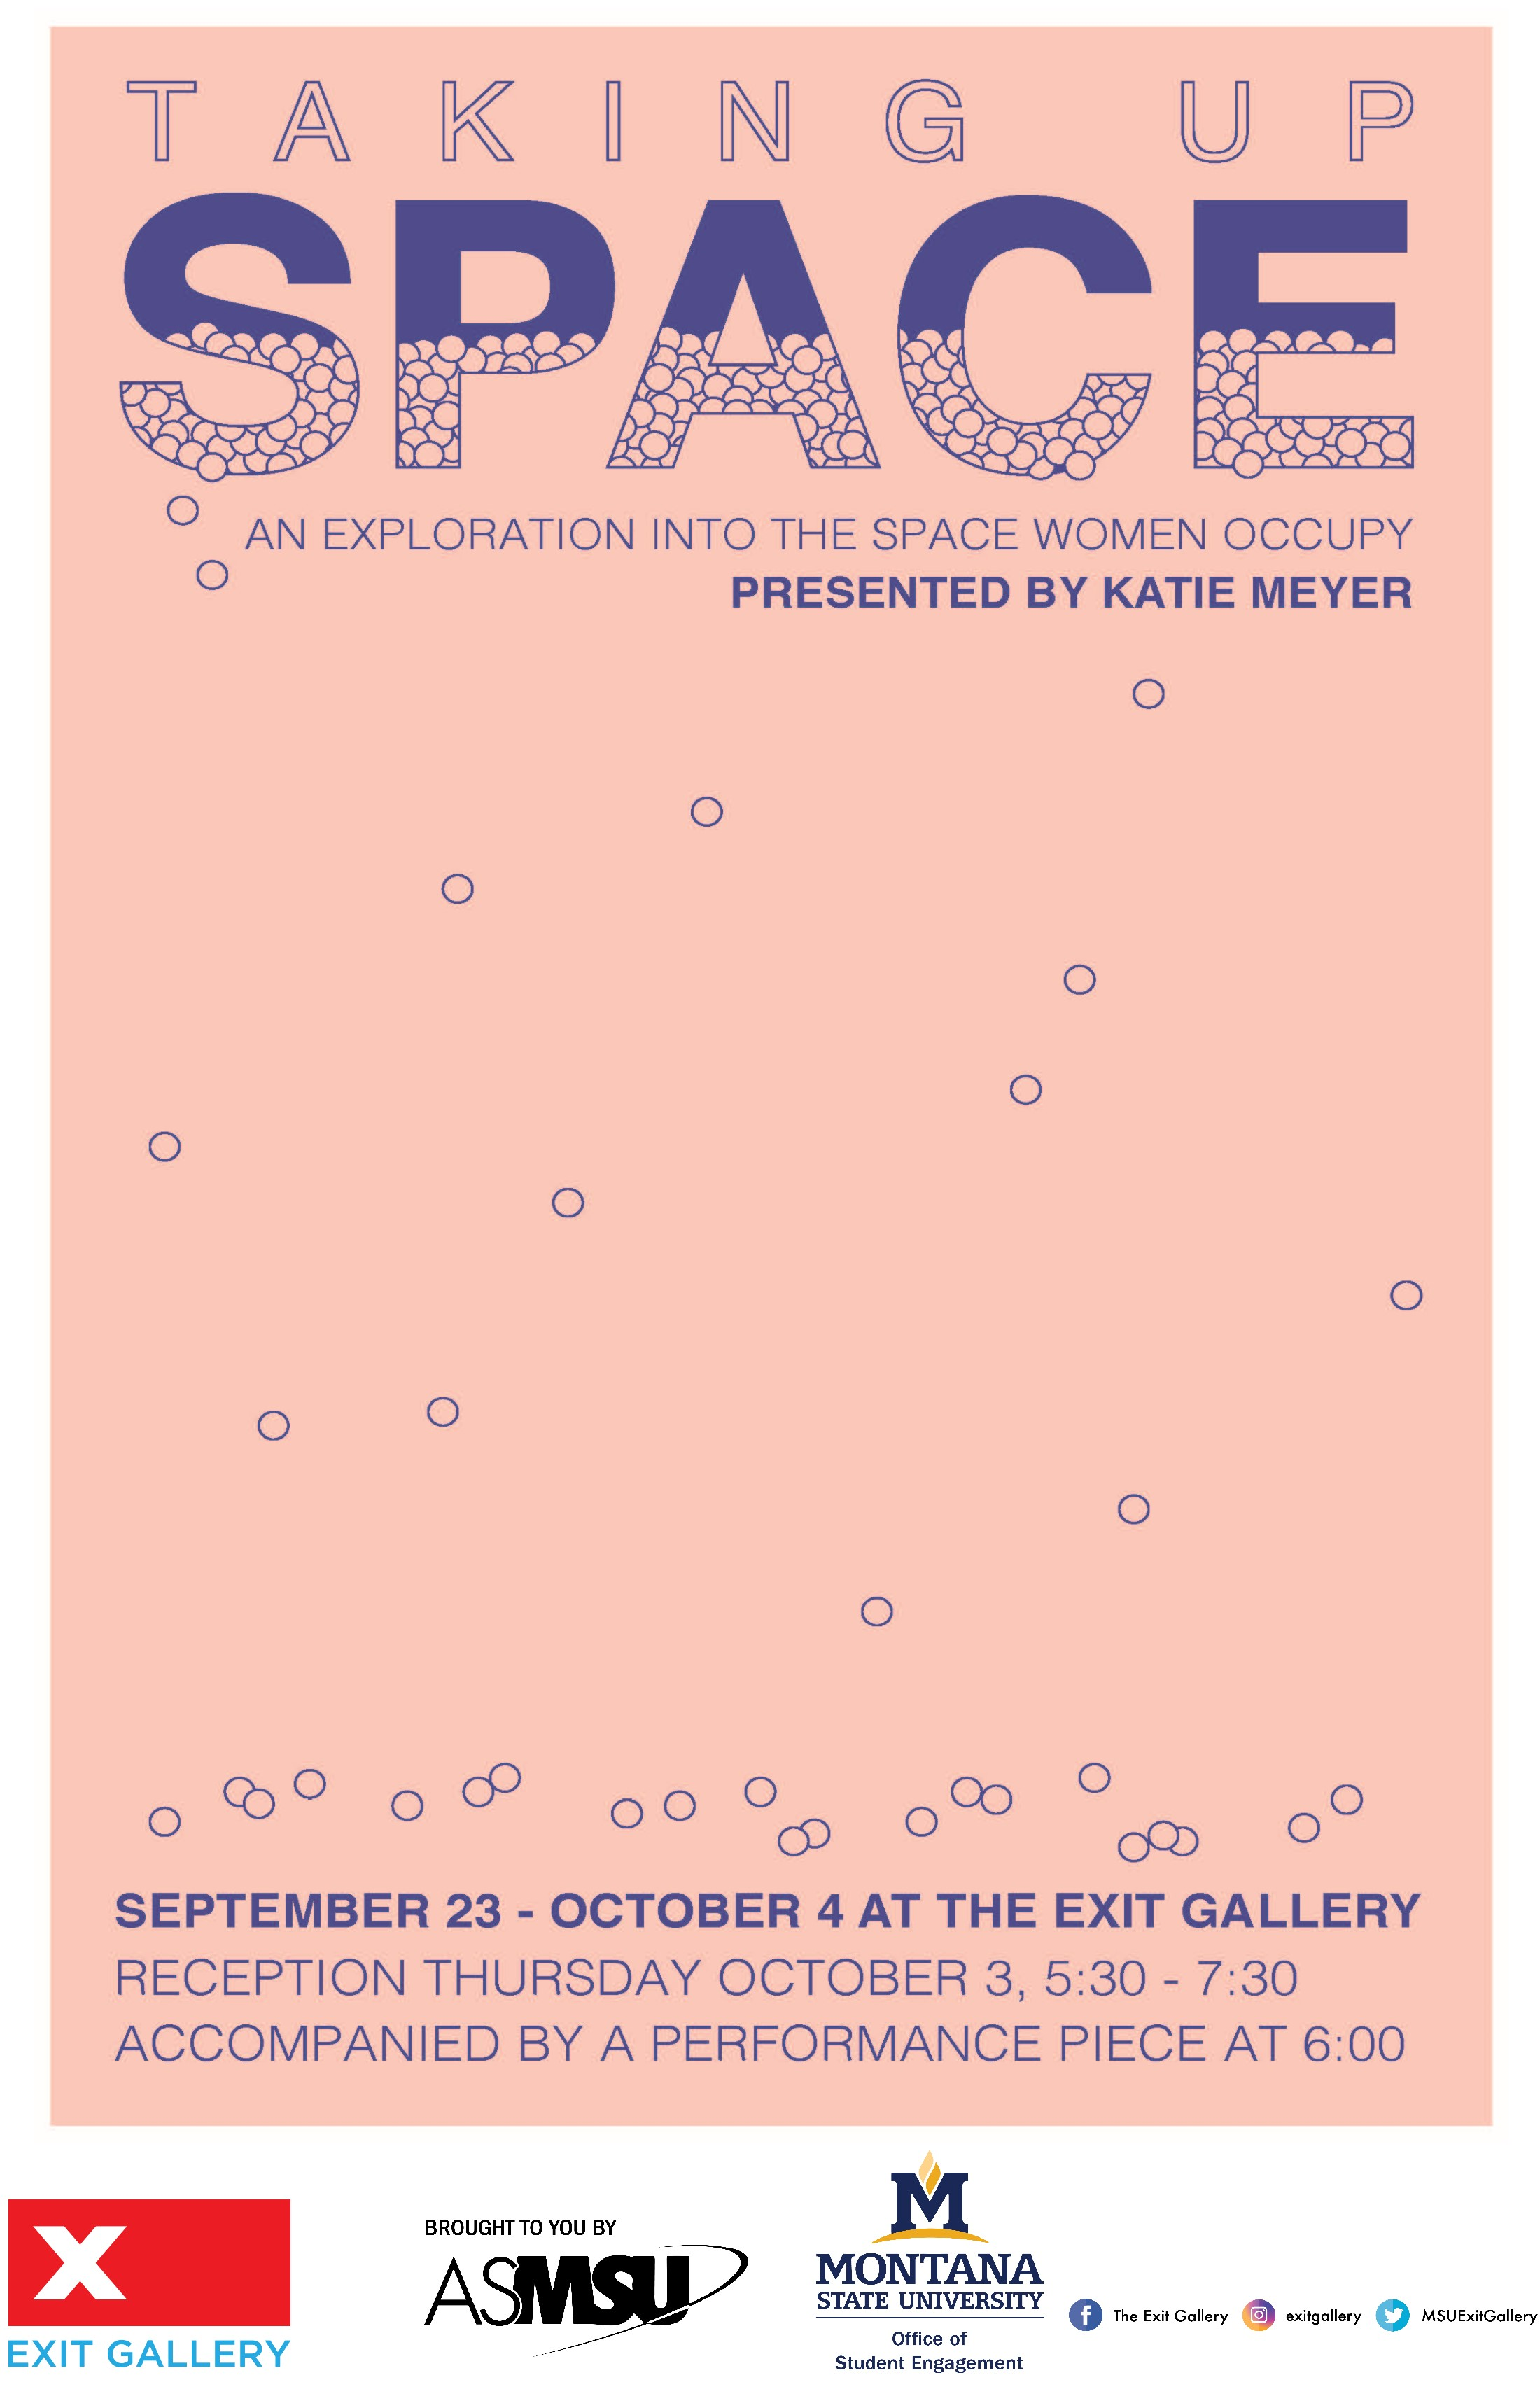 Taking Up Space. an exploration into the space women occupy. september 23-oct 4 at the exit gallery. reception thursday oct 3 5:30-7:30 accompanied by a performance piece at 6pm